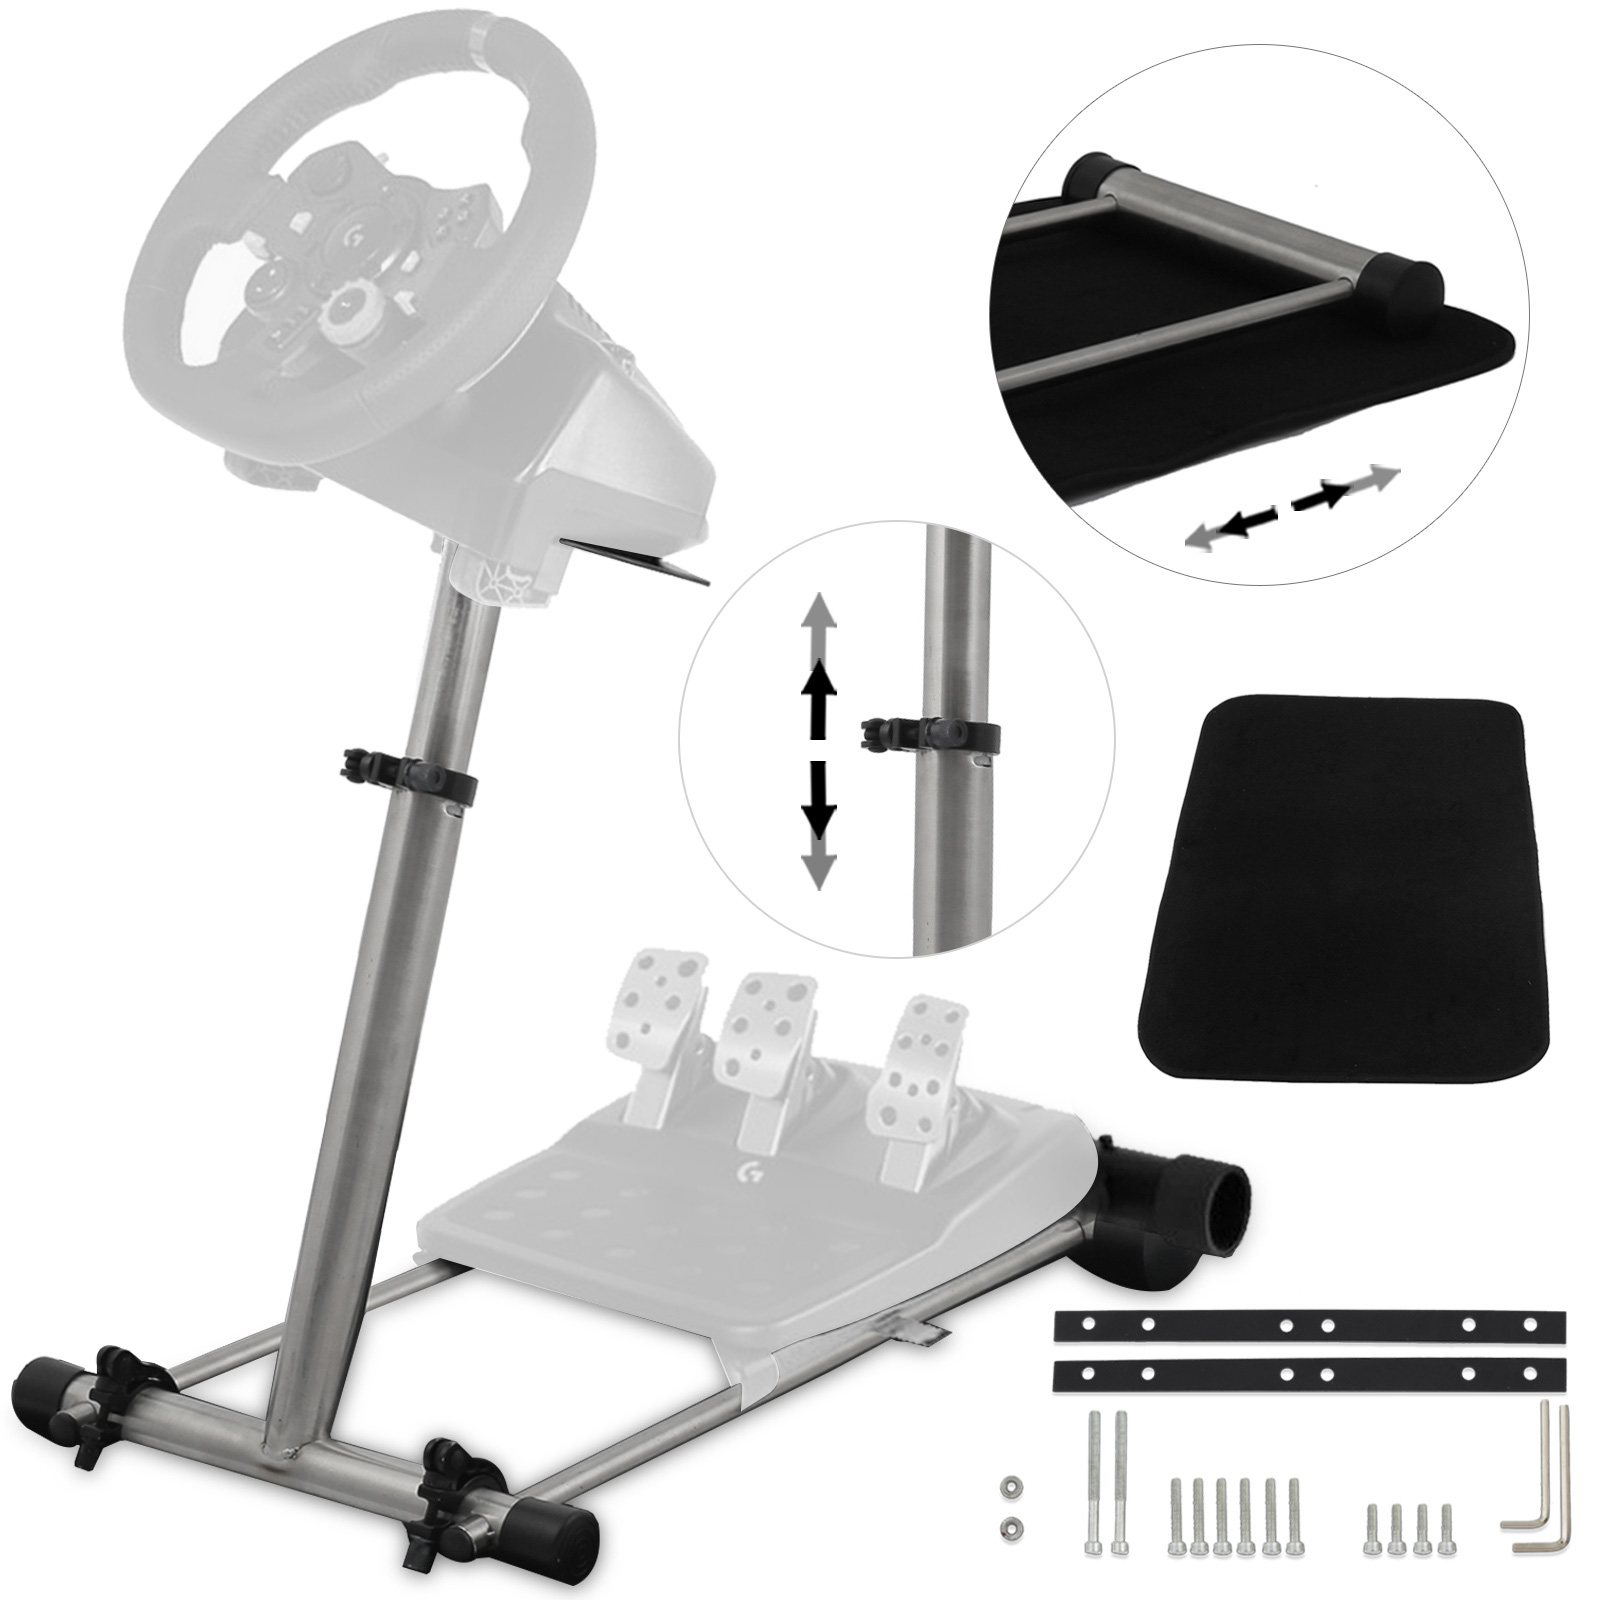 297f2e08cc4 Image is loading Racing-Simulator-Steering-Wheel-stand-Logitech-DELUXE-V2-